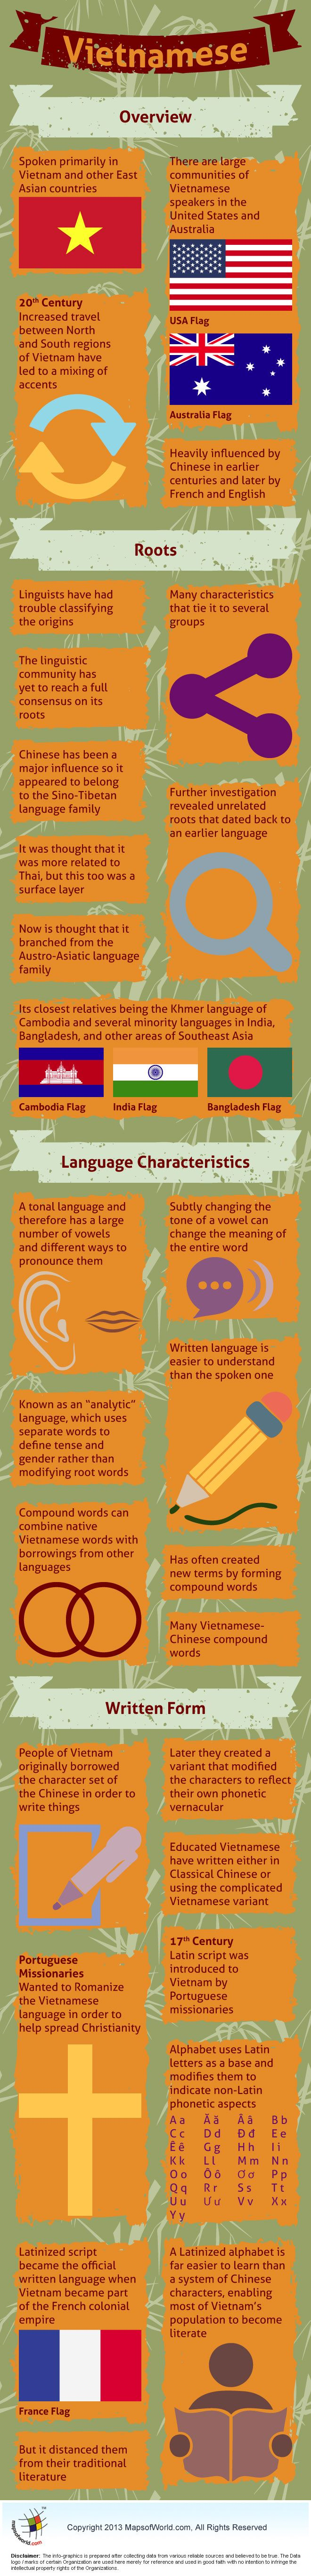 Vietnamese Language Infographic